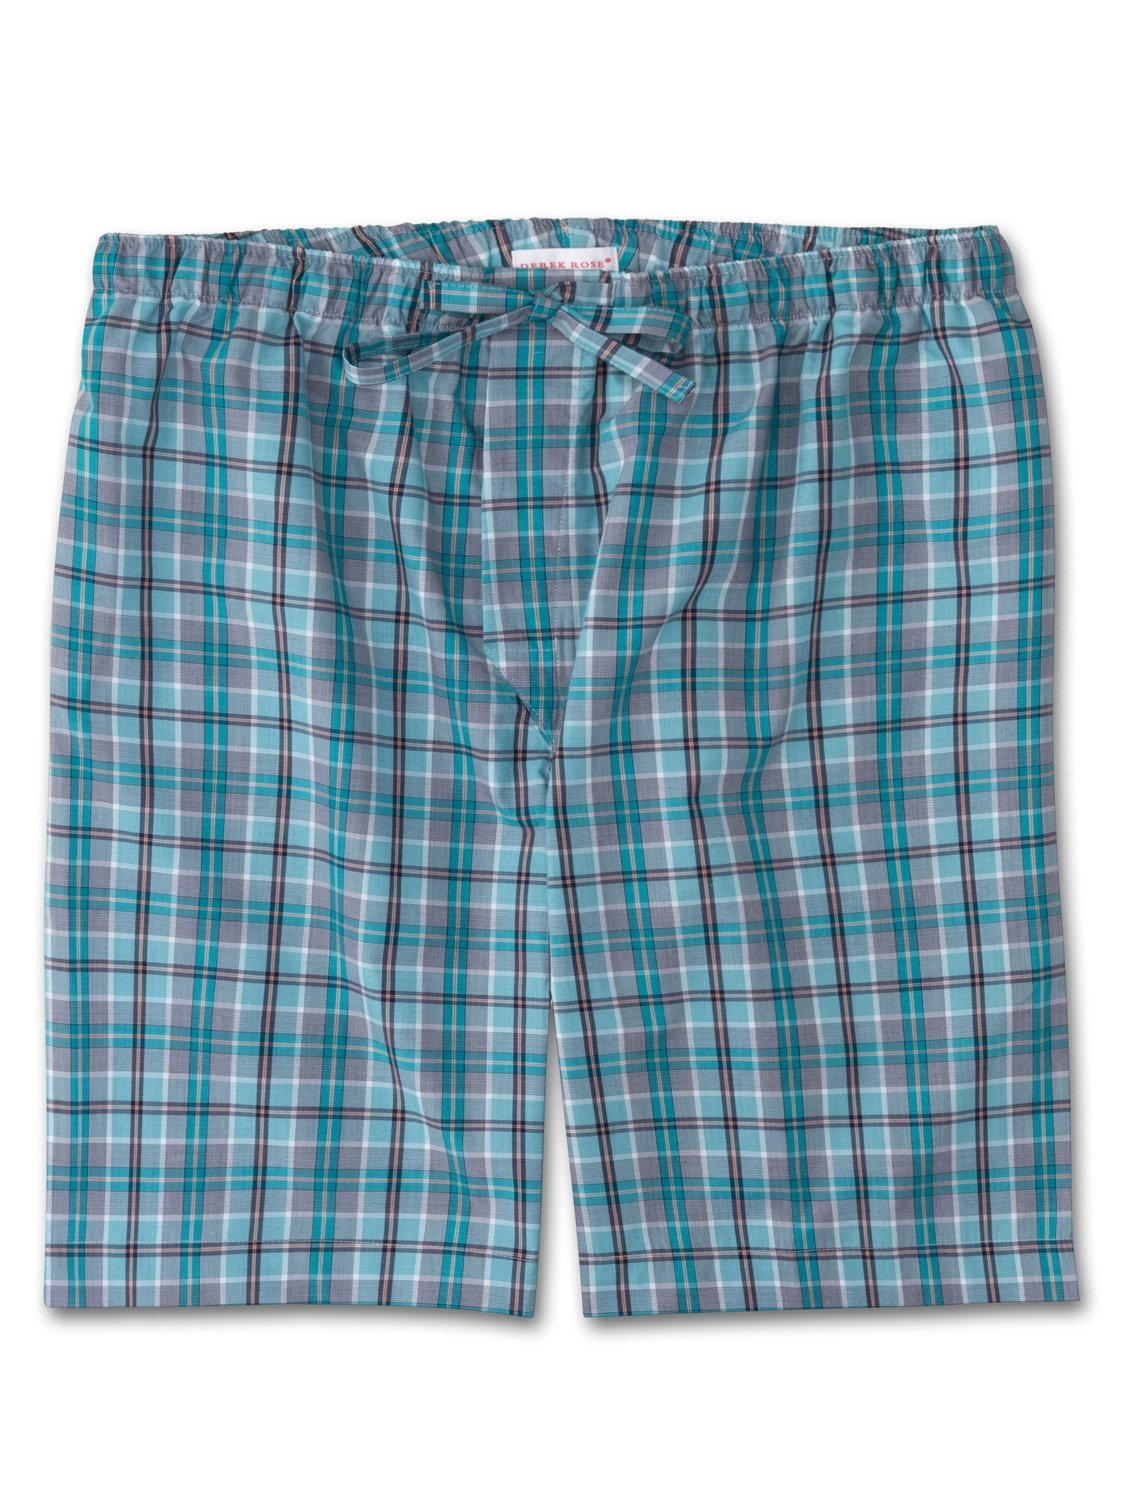 Men's Lounge Shorts Barker 18 Cotton Check Teal